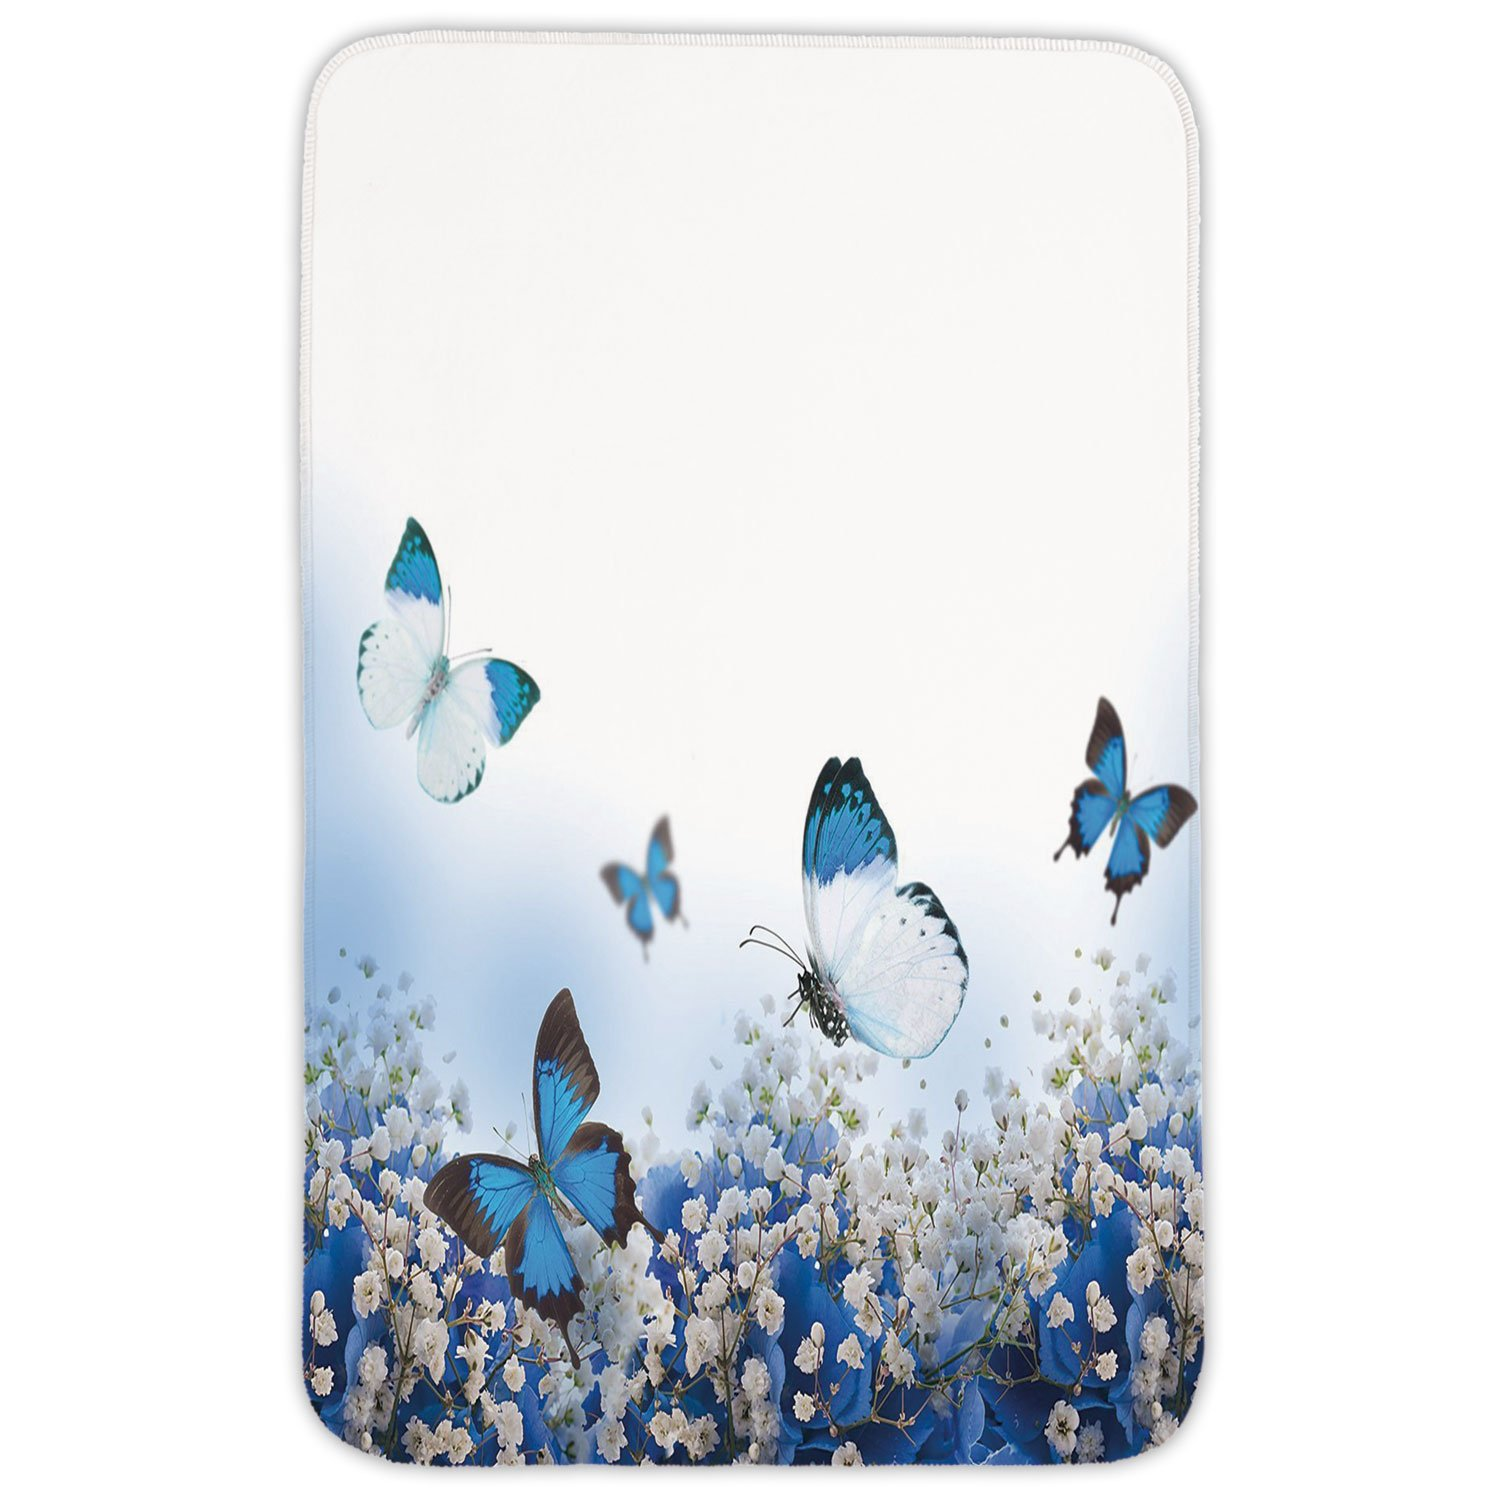 Rectangular Area Rug Mat Rug,Light Blue,Blue Hydrangeas and Butterflies Rural Scenery Freshness Spring Yard Garden Decorative,Blue Black White,Home Decor Mat with Non Slip Backing